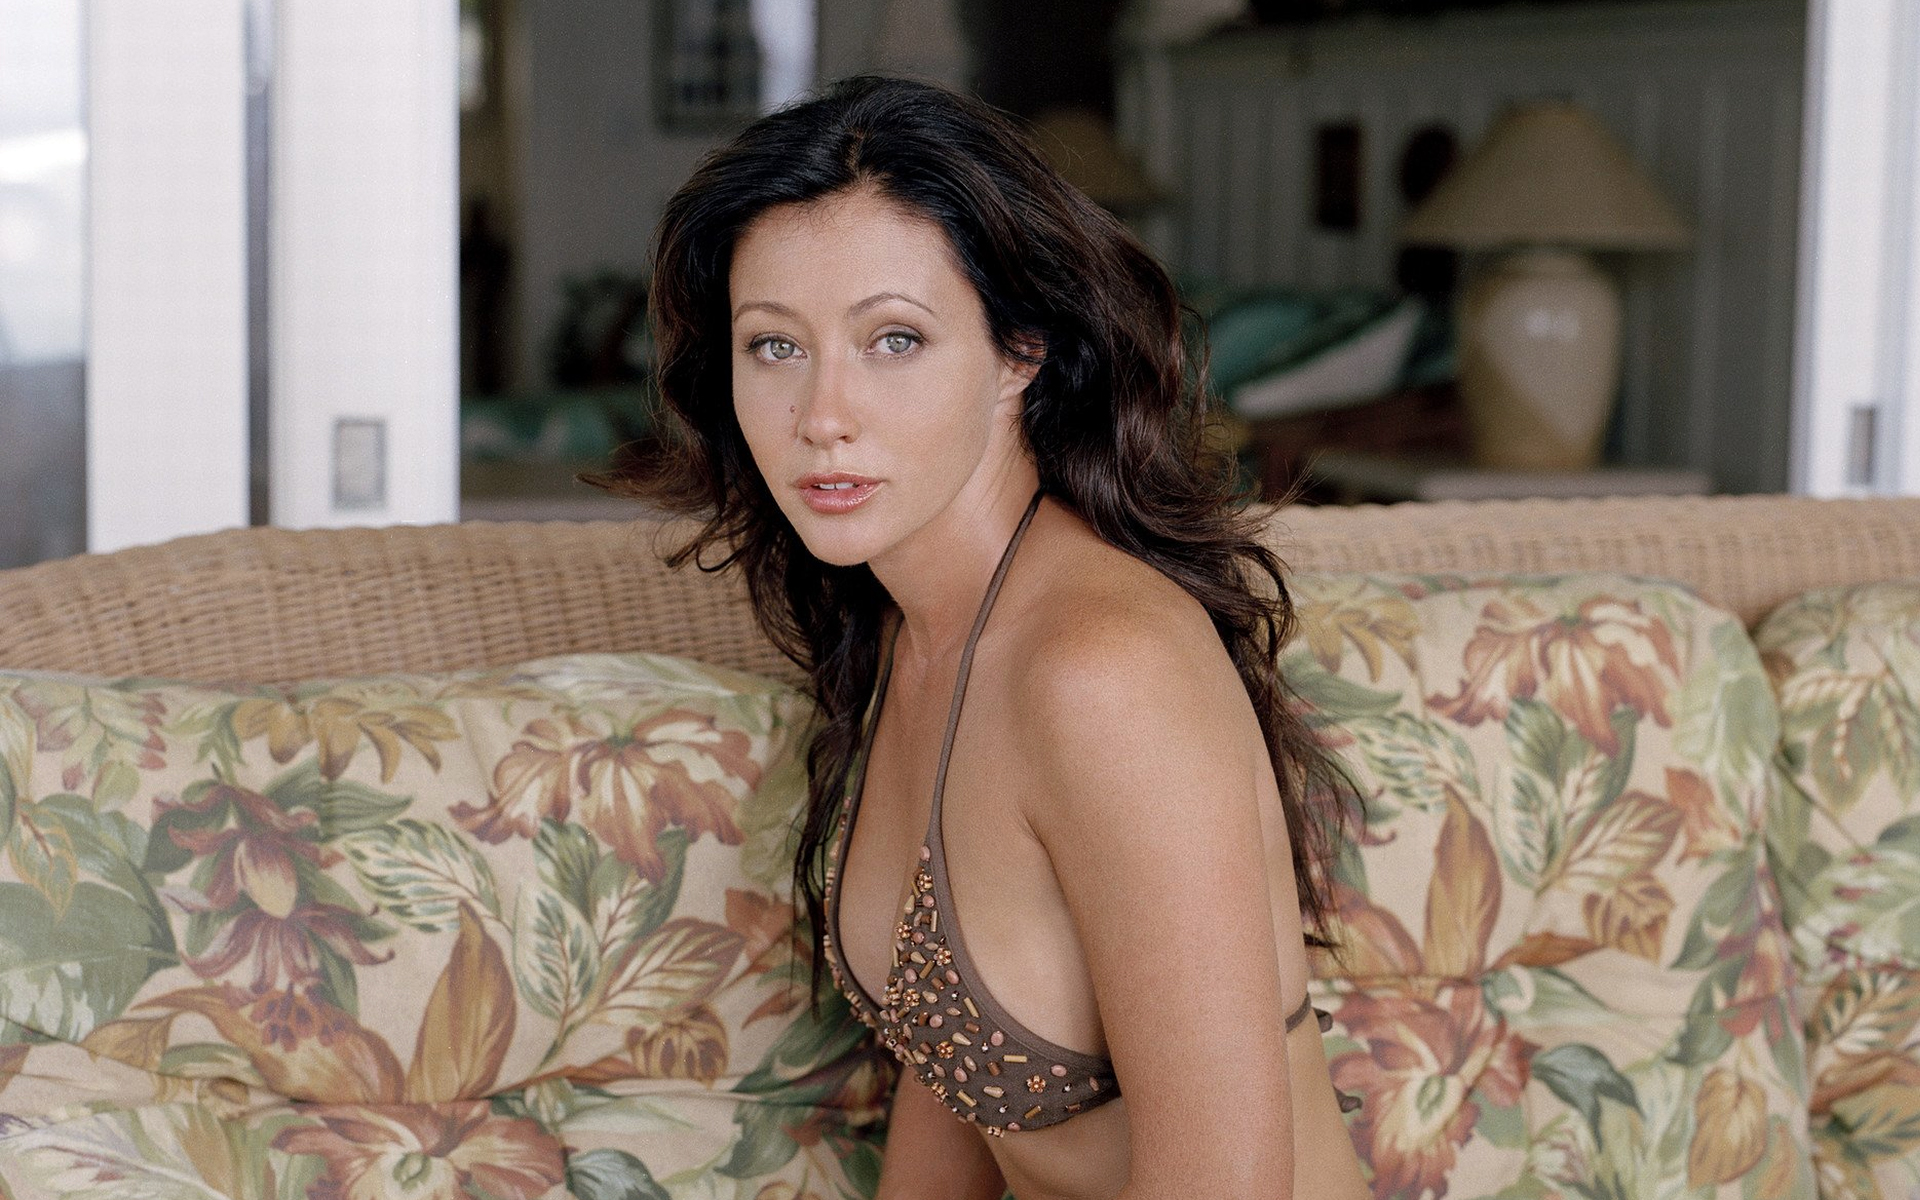 1920x1200 - Shannen Doherty Wallpapers 29